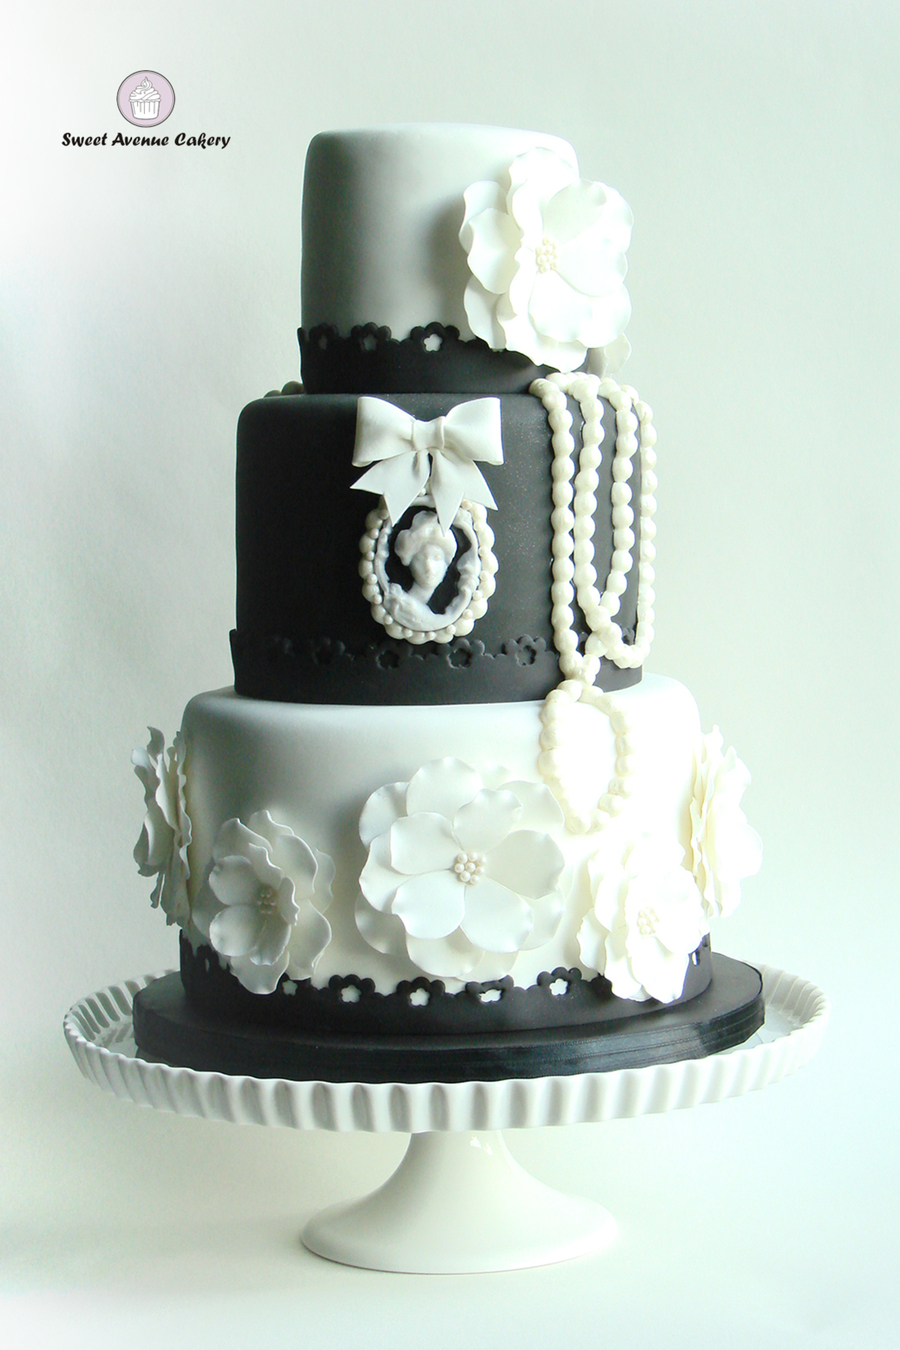 Vintage Black And White Wedding Cake On Central